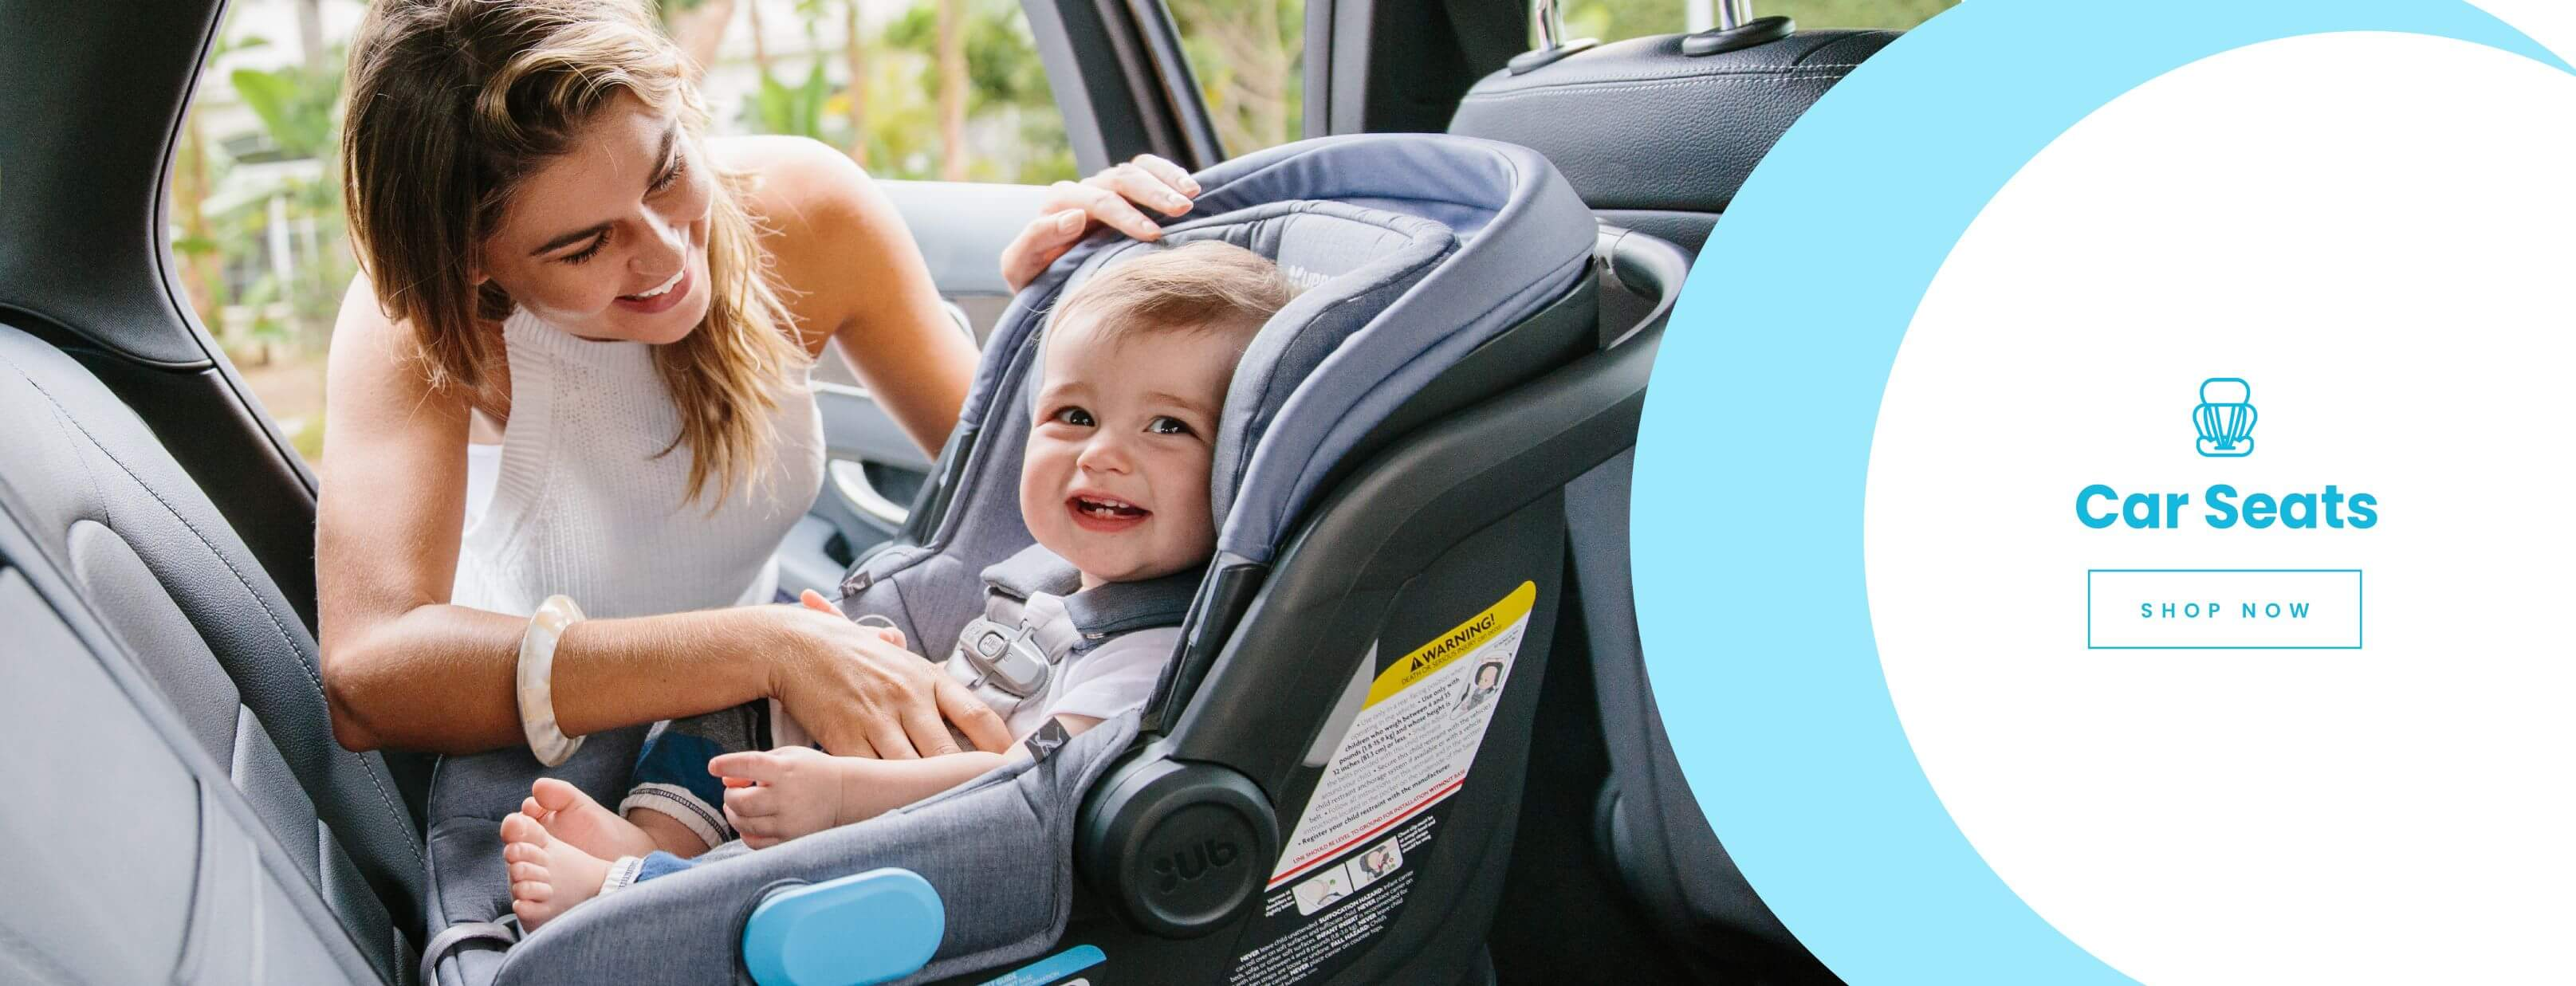 Shop the best car seats - Luna Baby Store